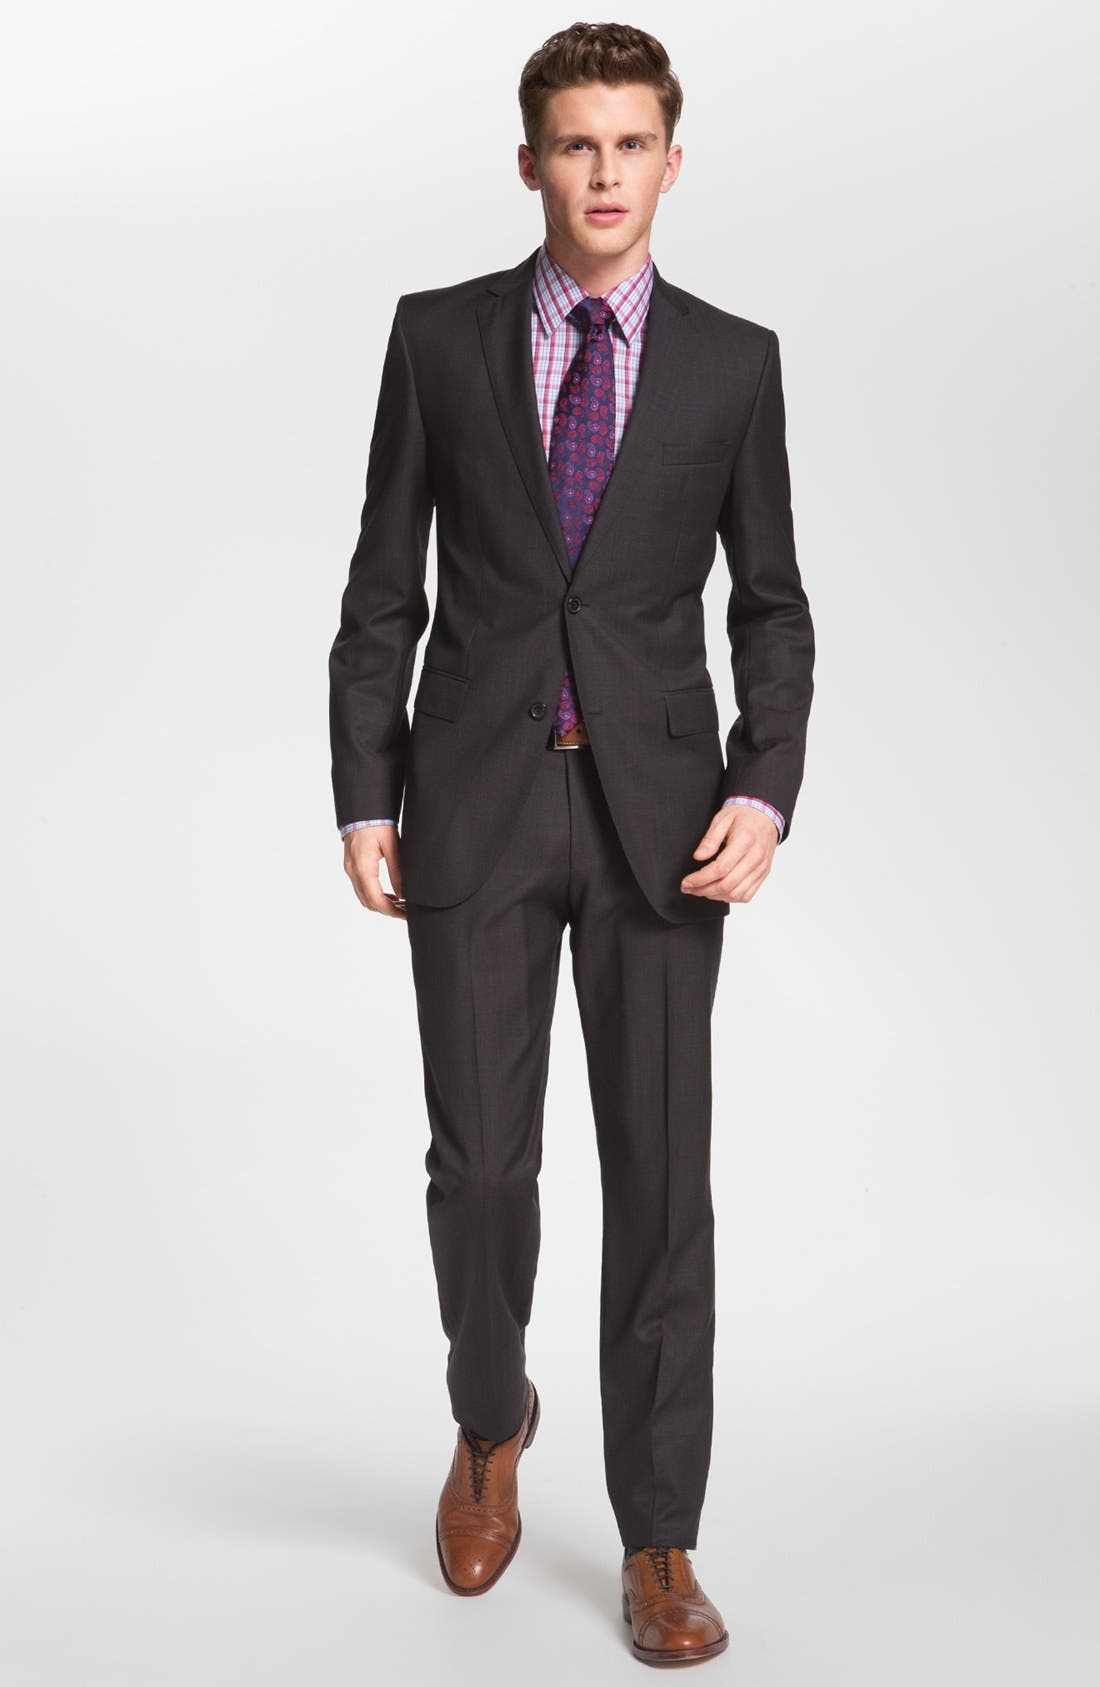 Alternate Image 1 Selected - BOSS 'Jam/Sharp' Trim Fit Dark Grey Suit